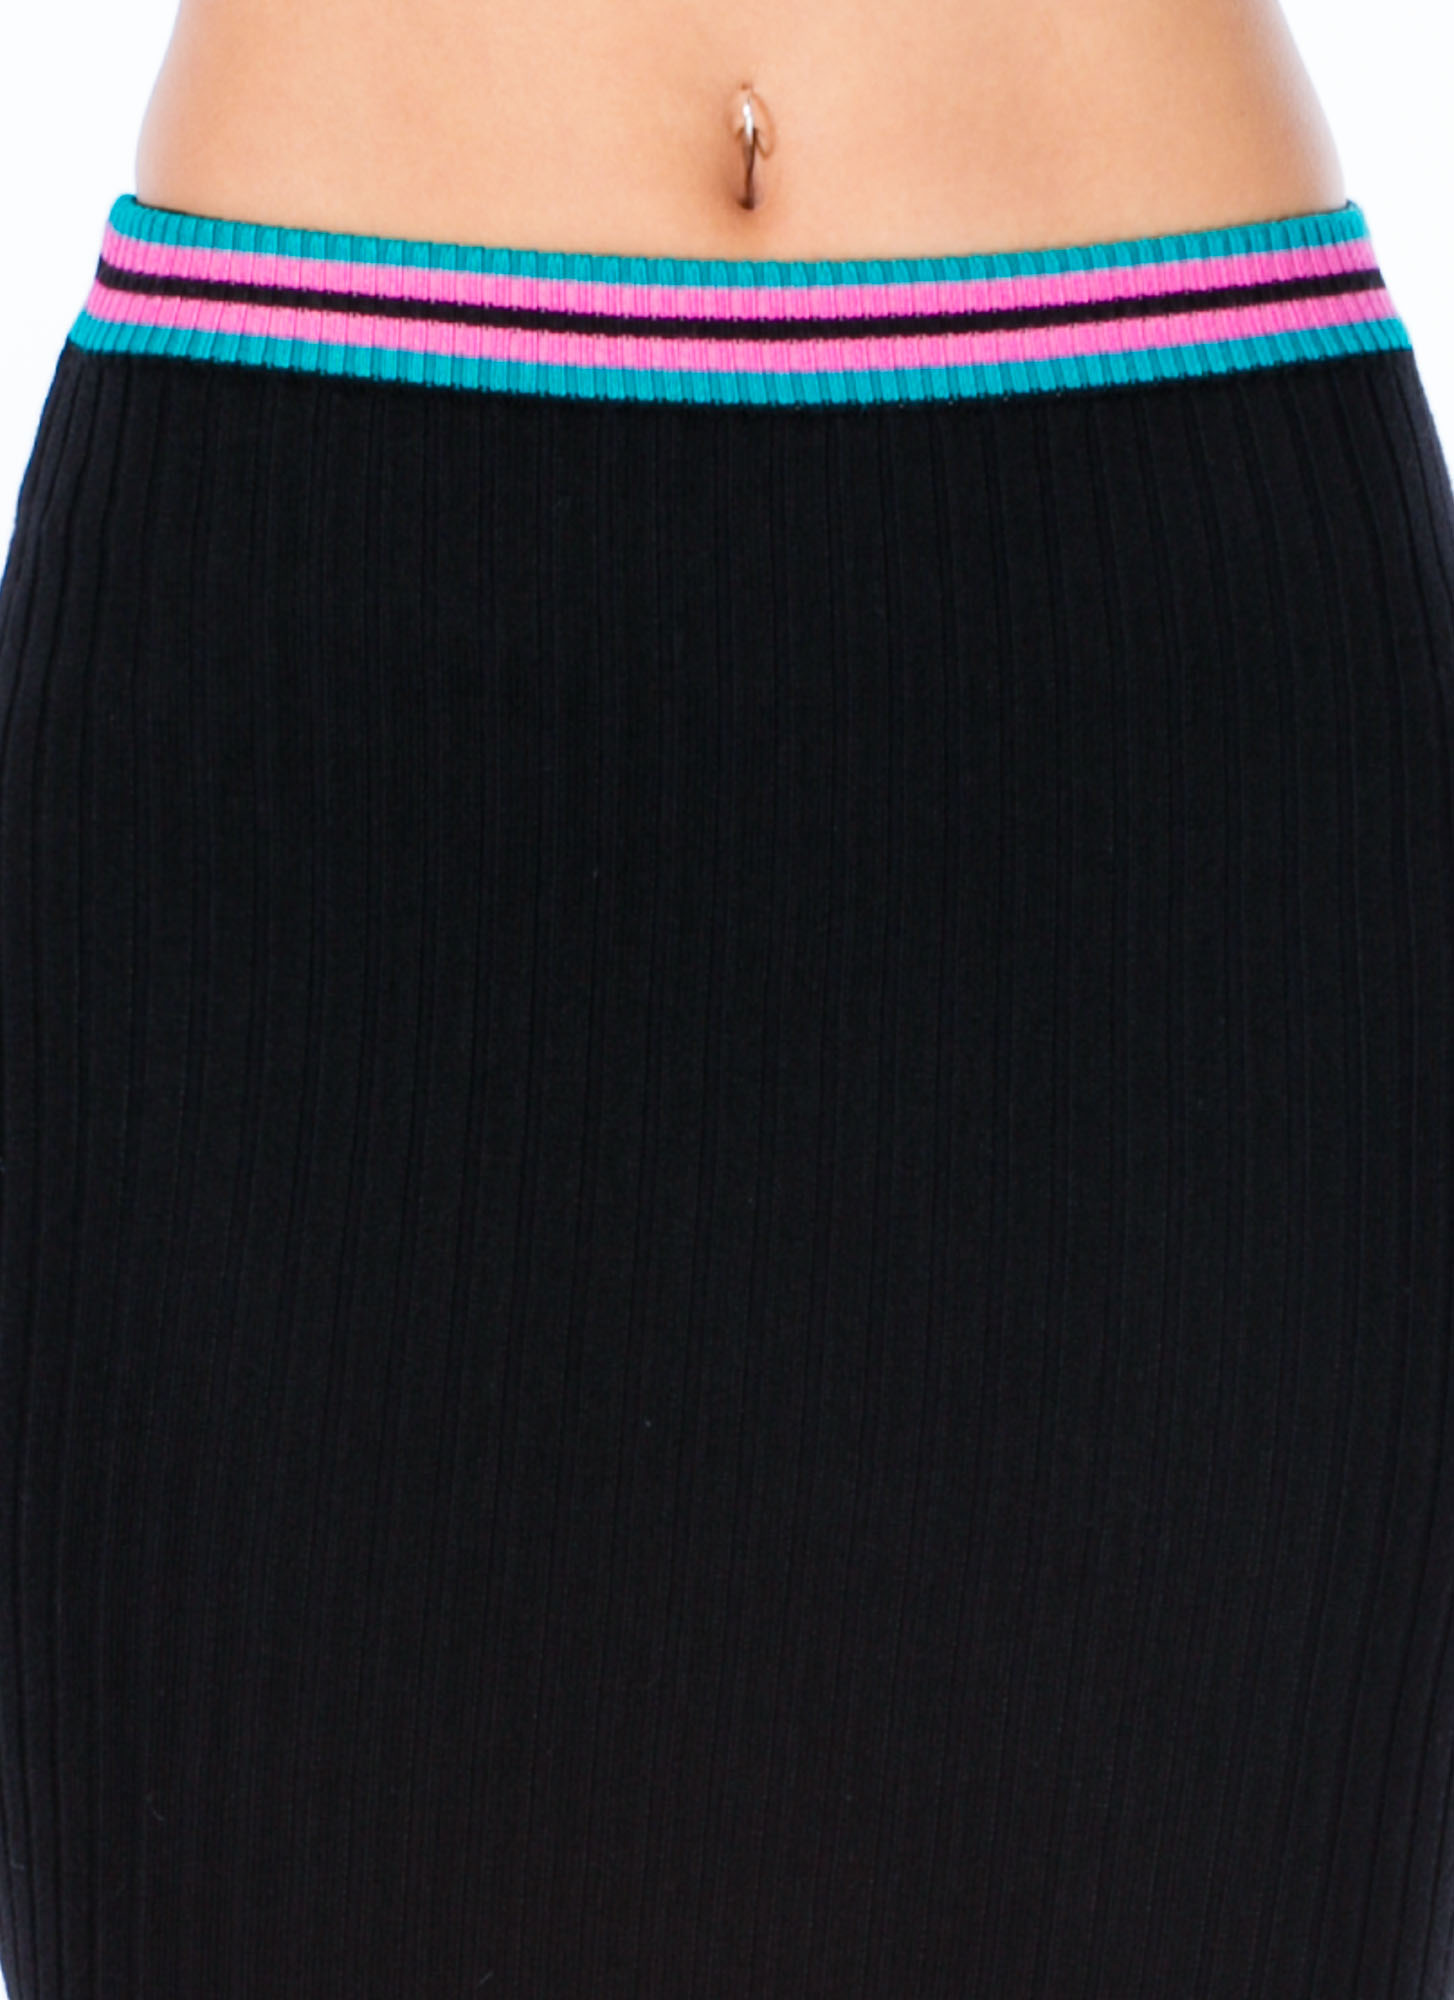 Be An Athlete Midi Skirt BLACK